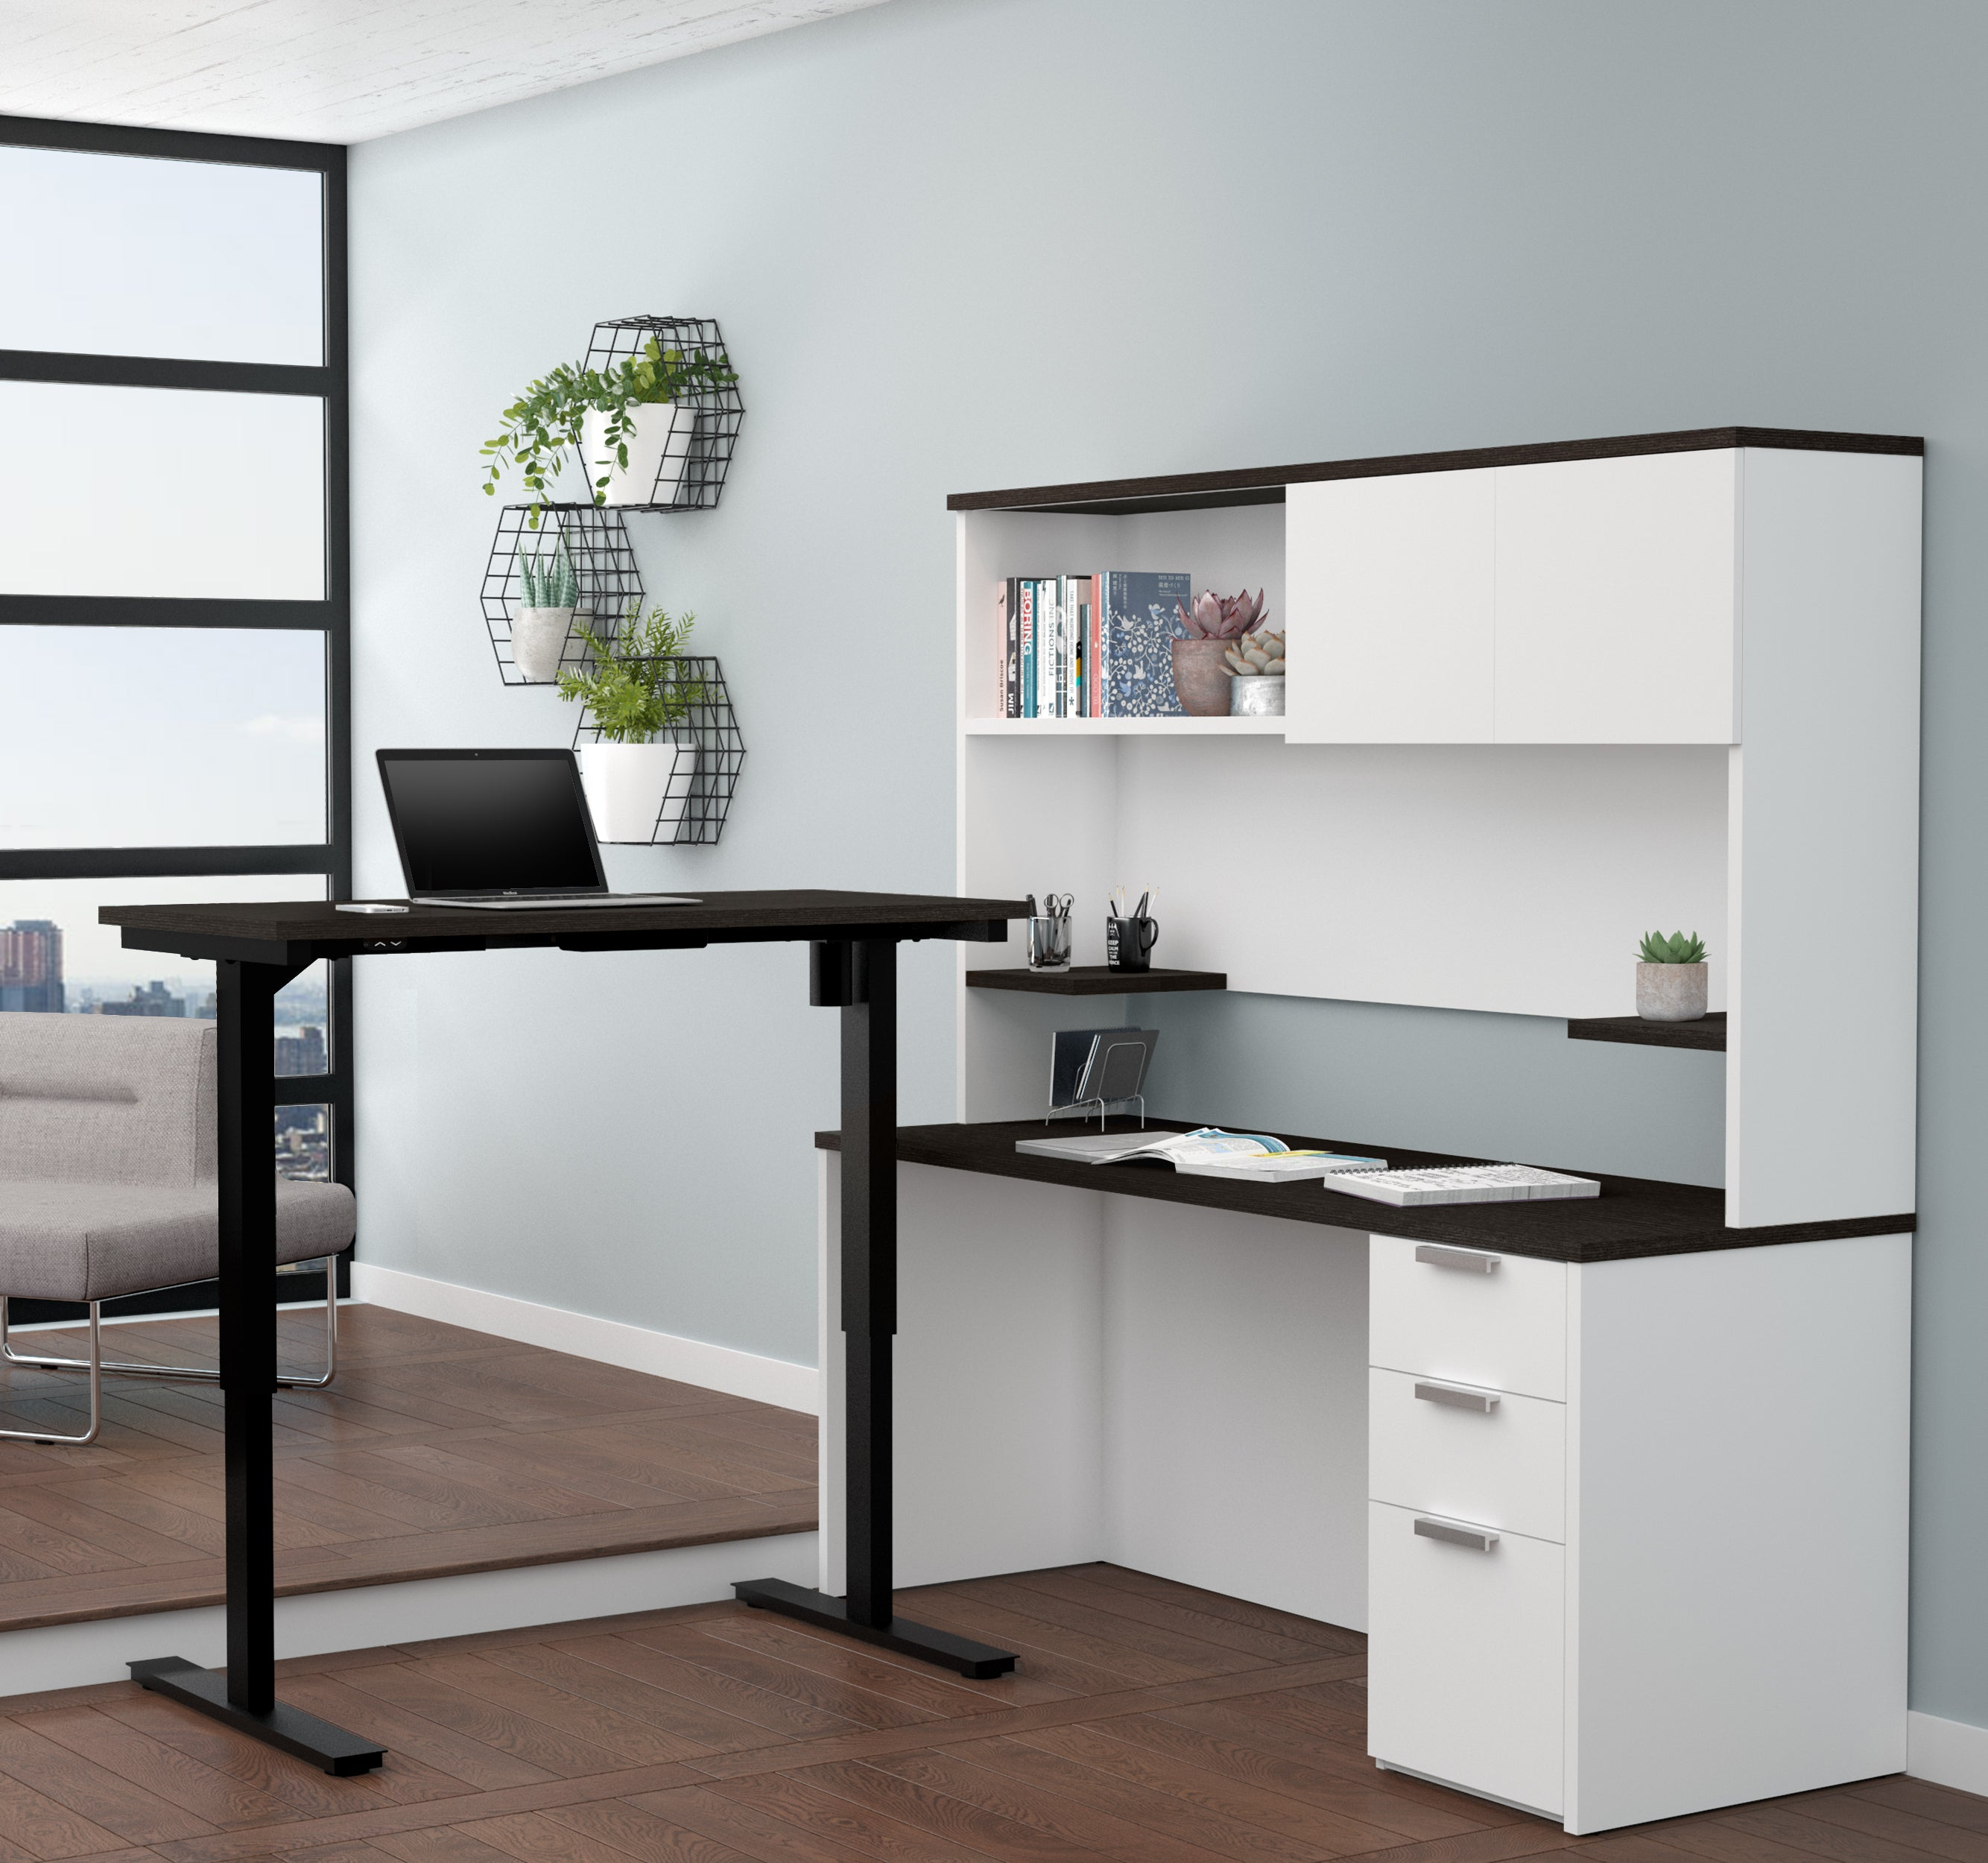 L-shaped Desk & Hutch with Height Adjustable Side, in White & Deep Gray